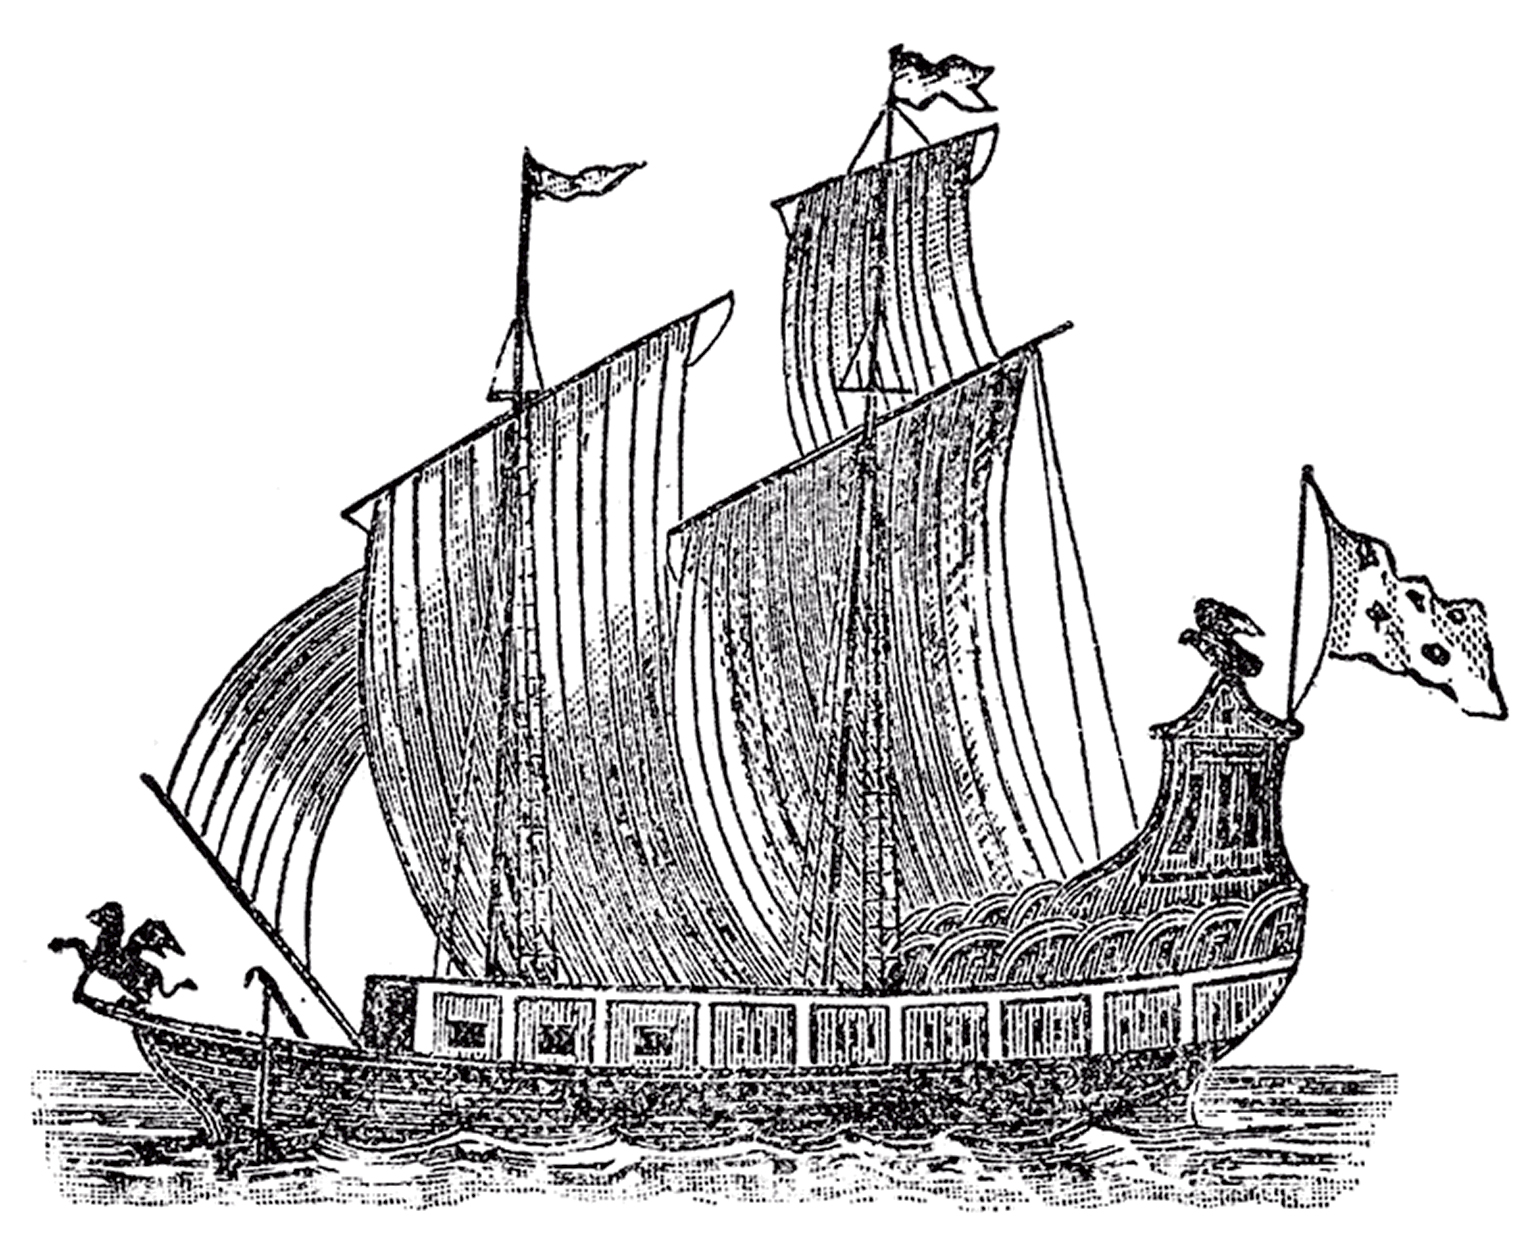 The Griffon, the first European vessel to sail Lake Michigan,  is the holy grail of Great Lakes shipwrecks.